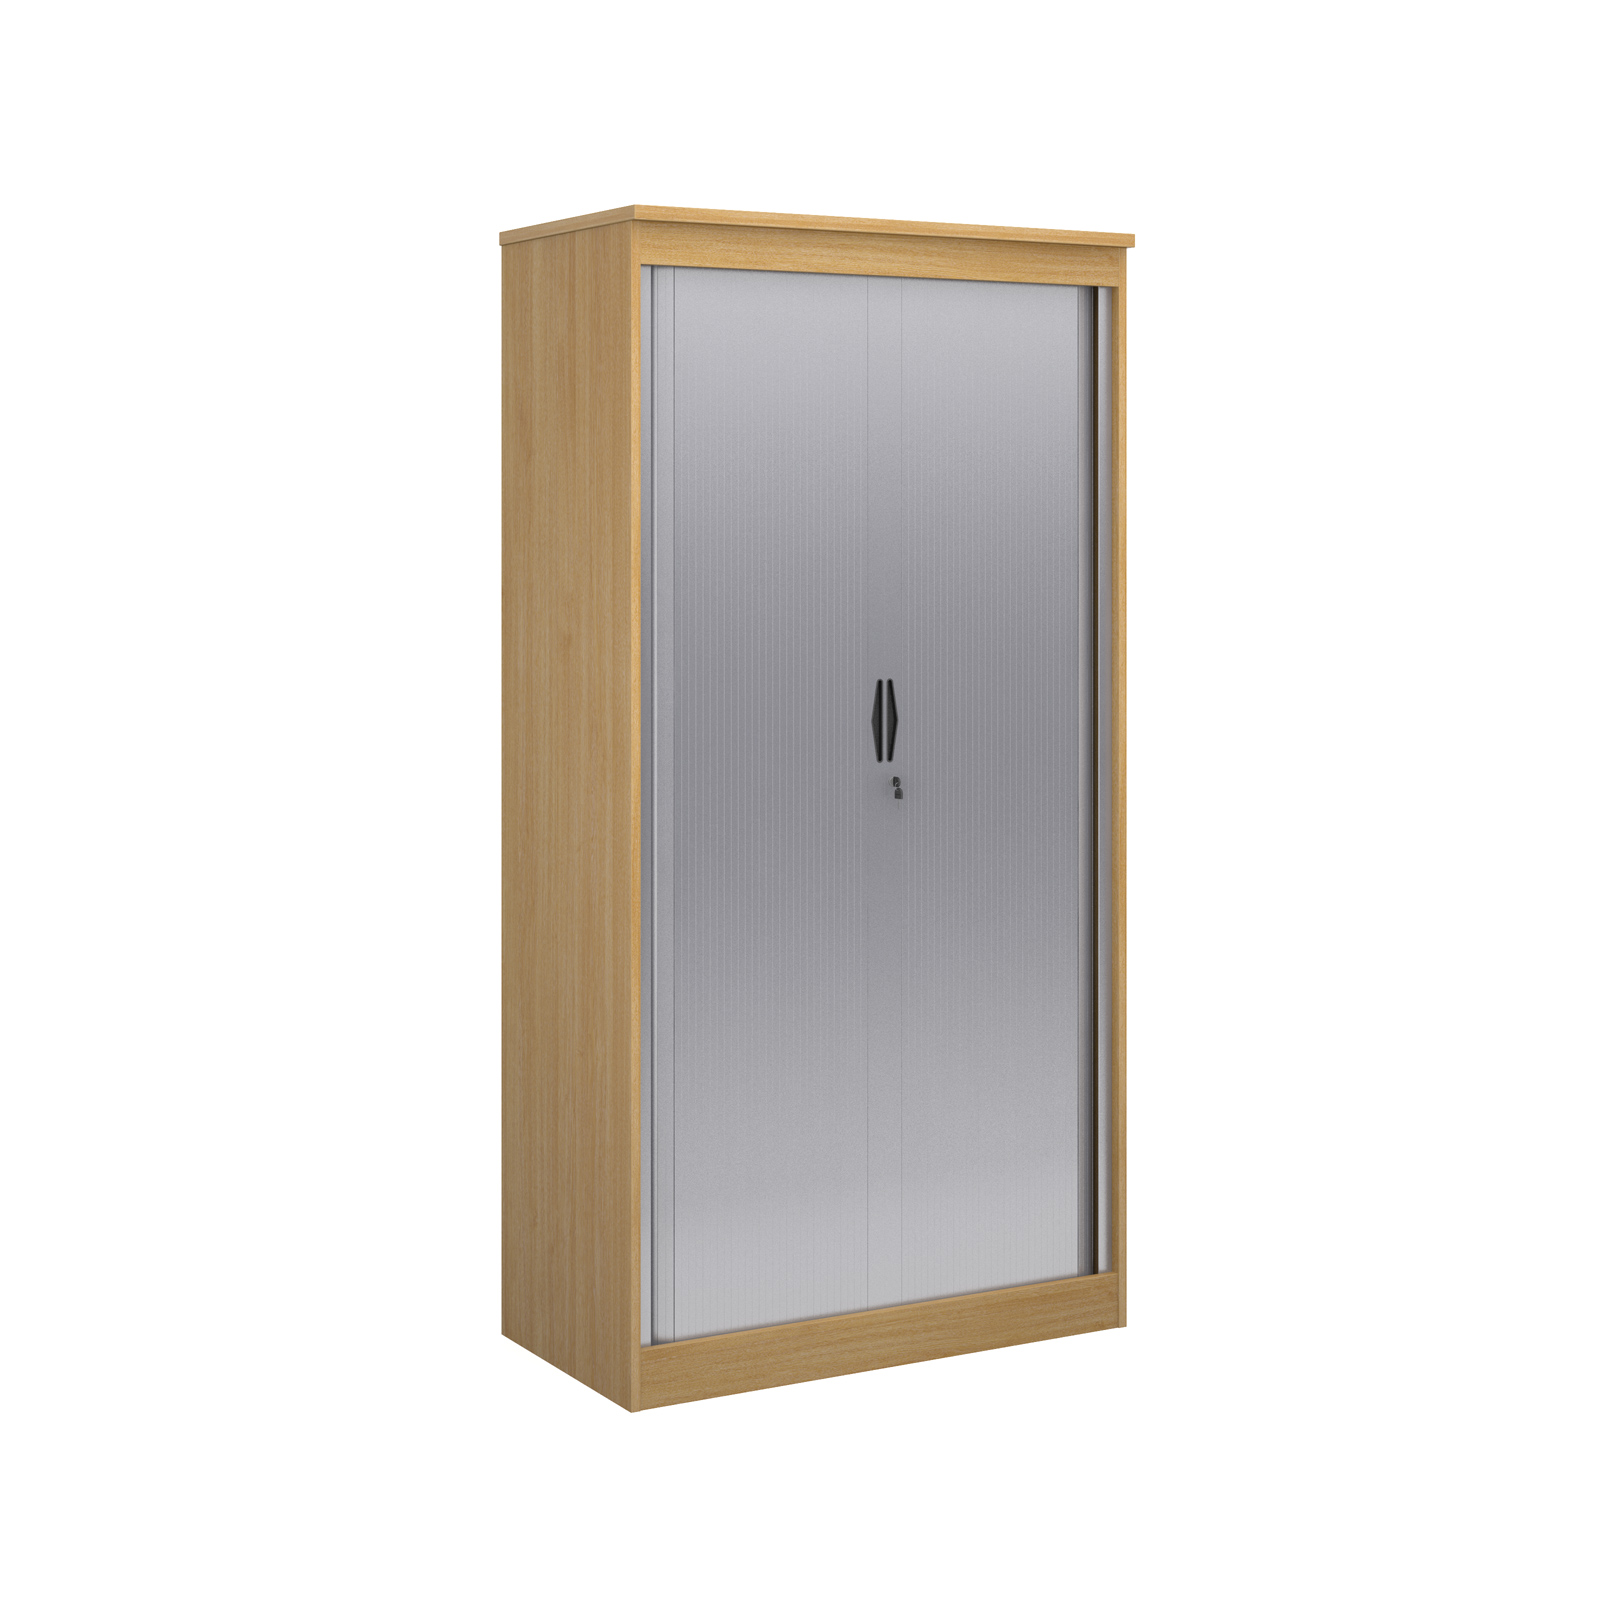 2000mm high system horizontal tambour door cupboard in oak